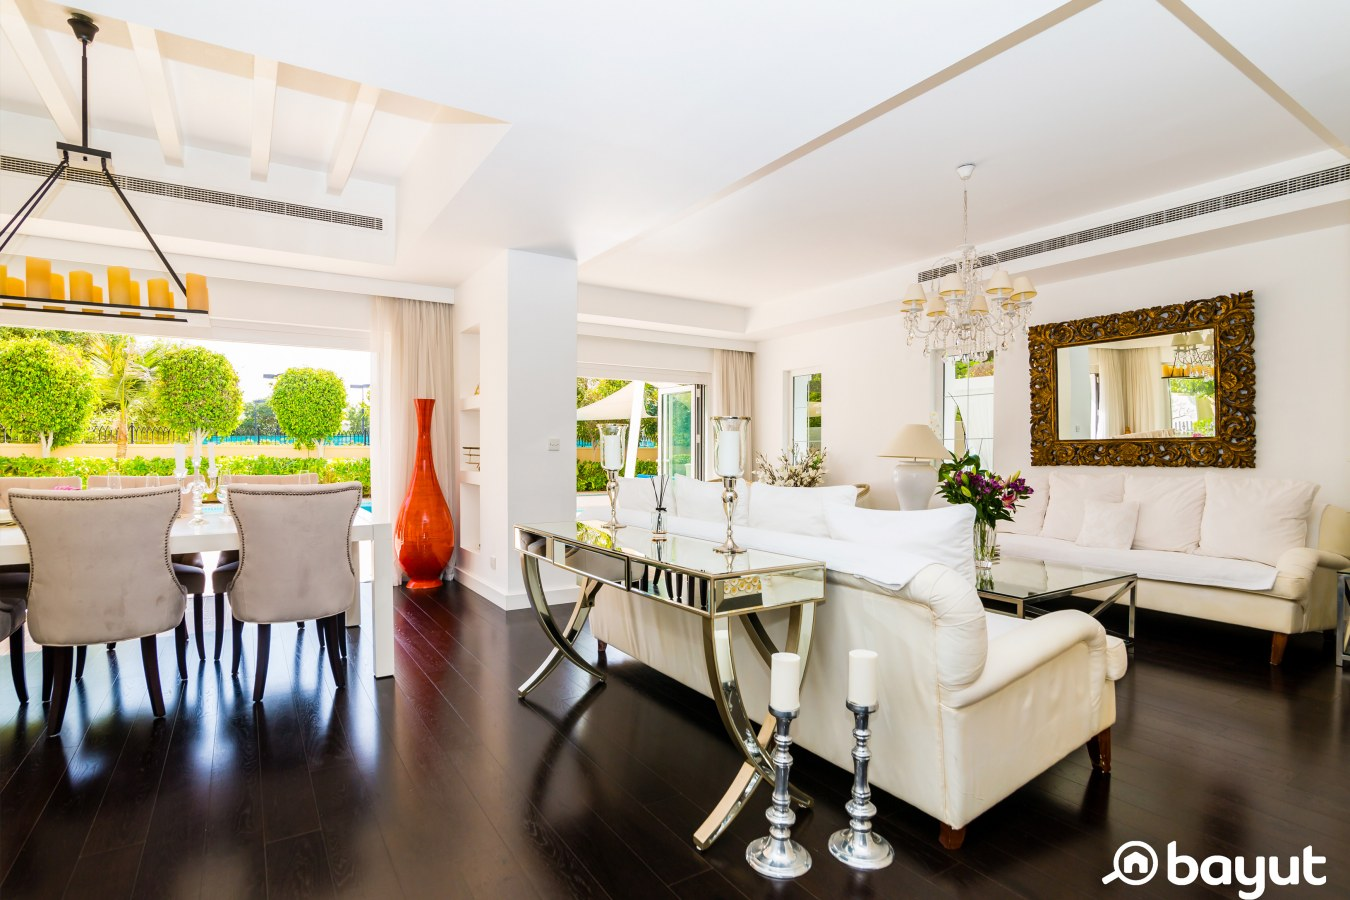 4 Bed Arabian Ranches Villa with a private pool in Alvorada - Bayut